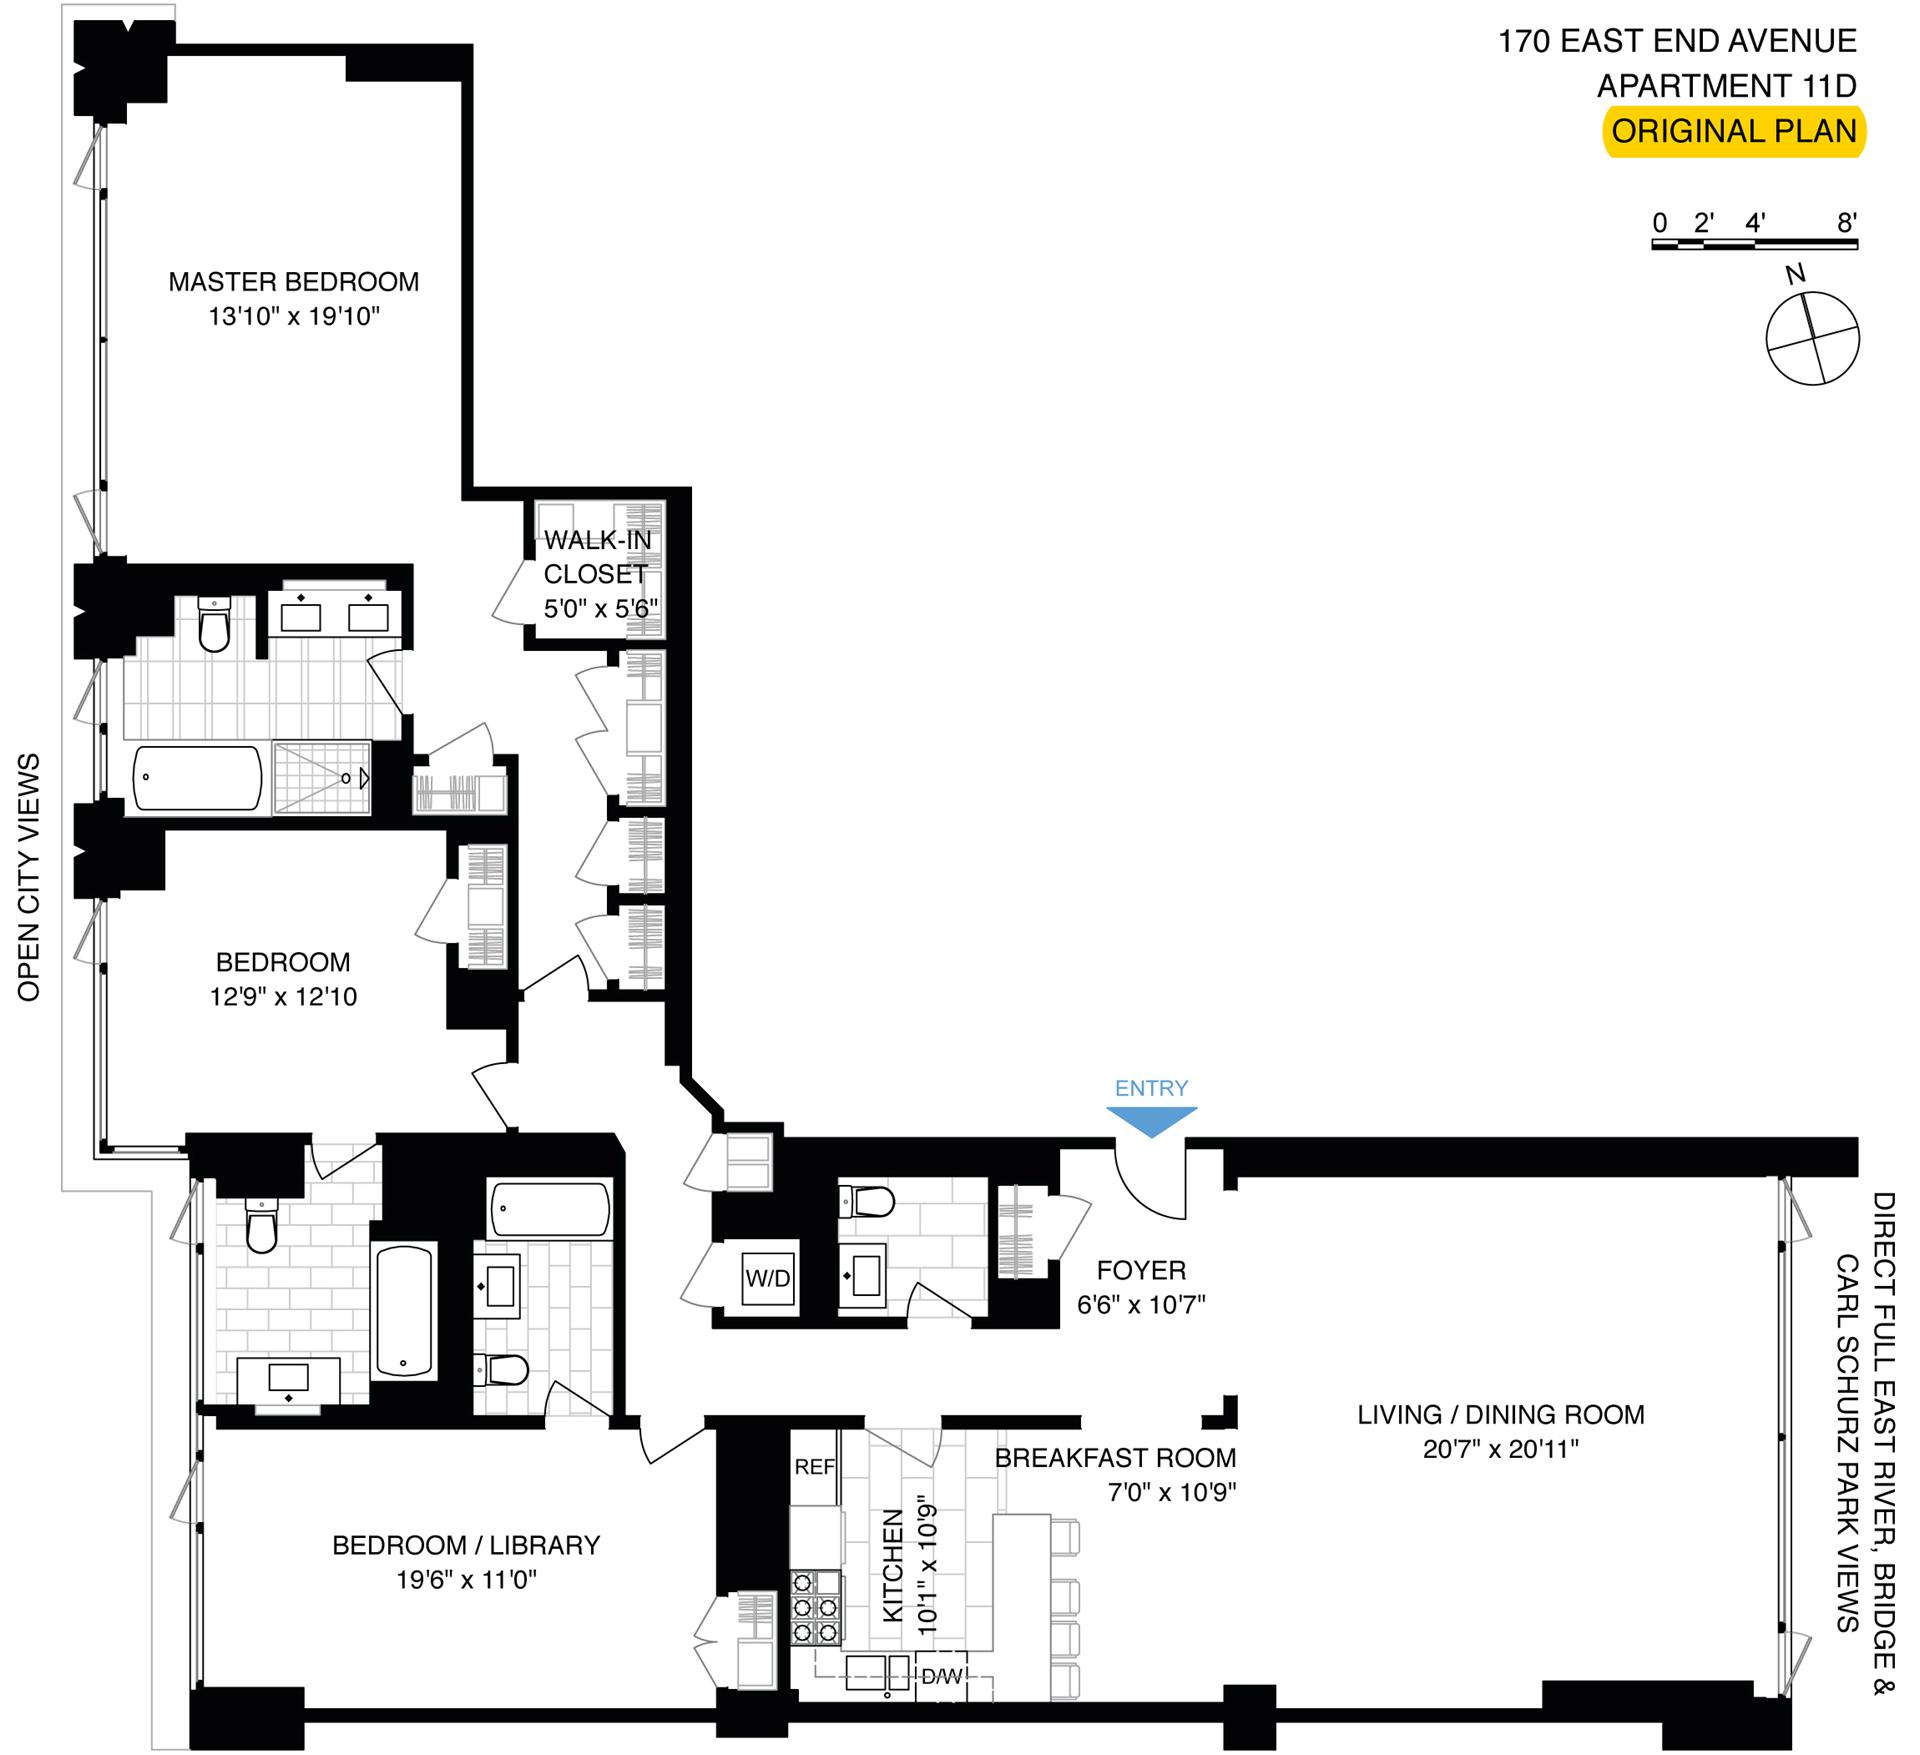 Floor plan of 170 East End Avenue, 11D - Upper East Side, New York